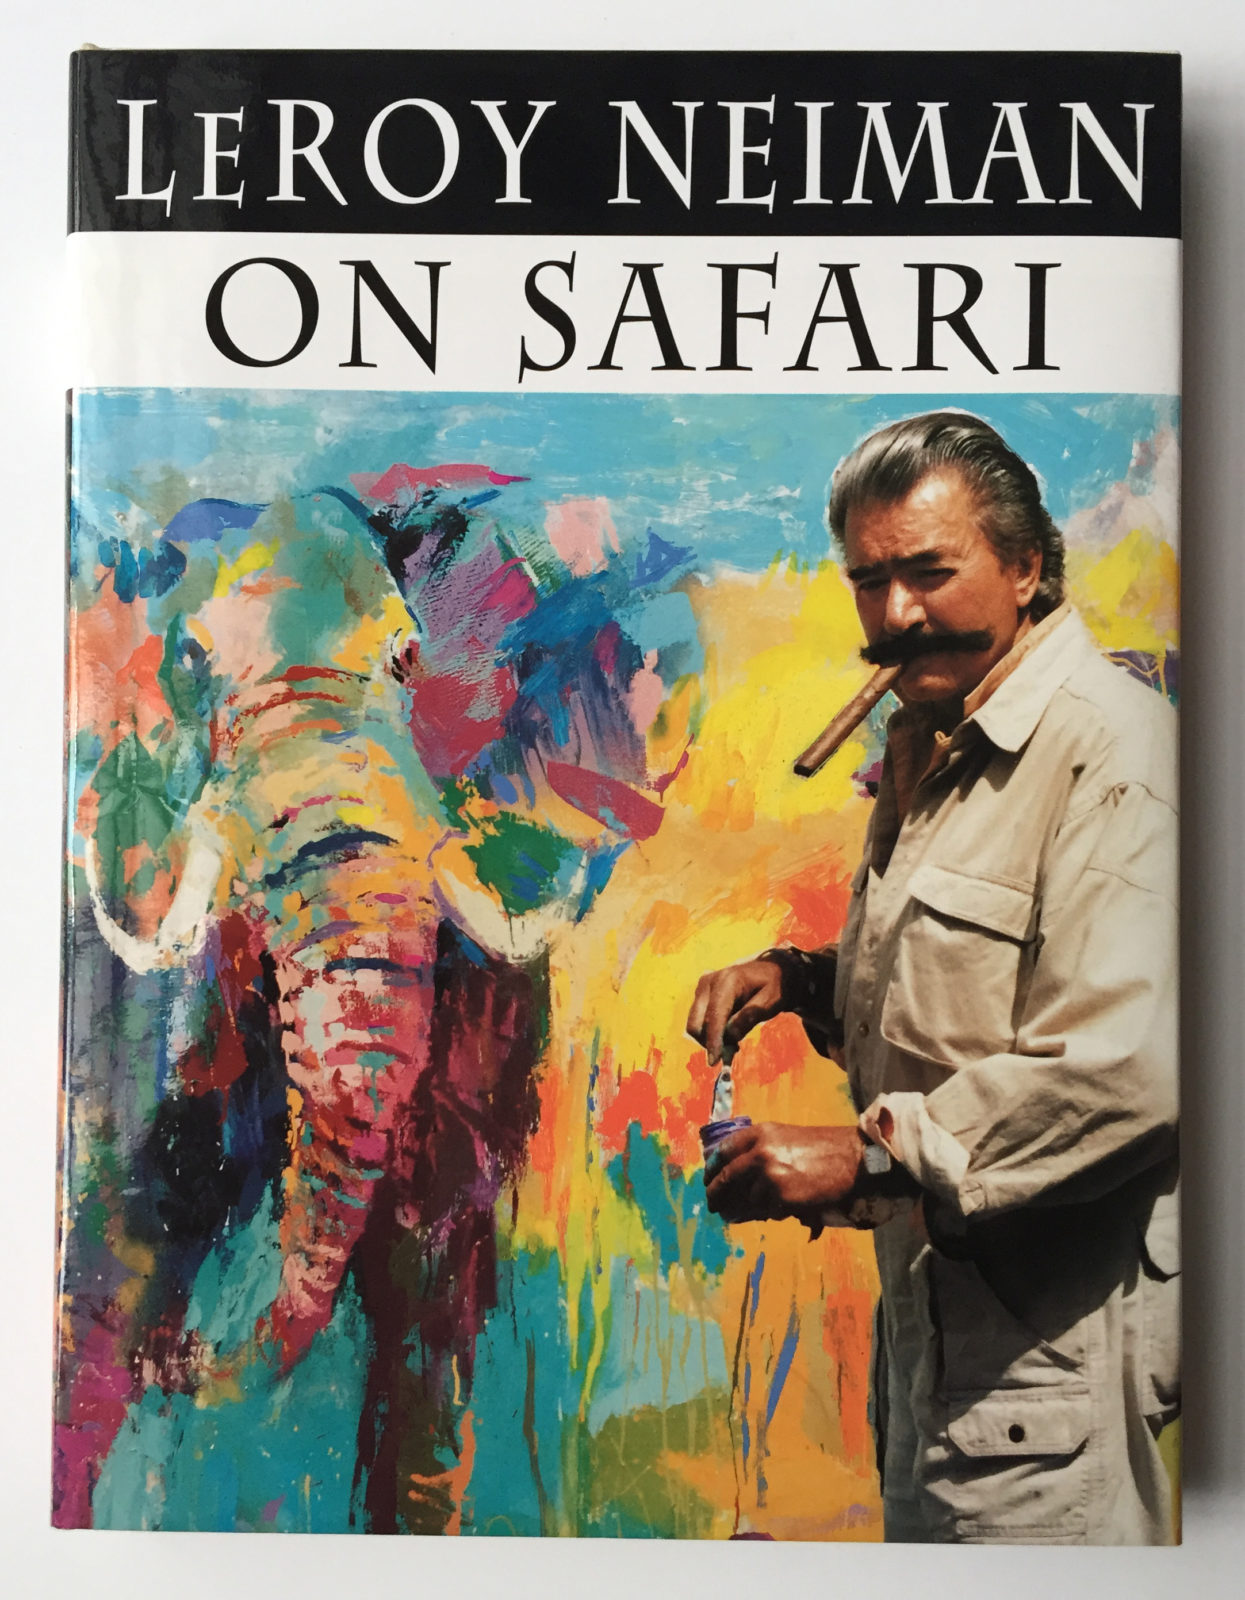 LeRoy Neiman on Safari book